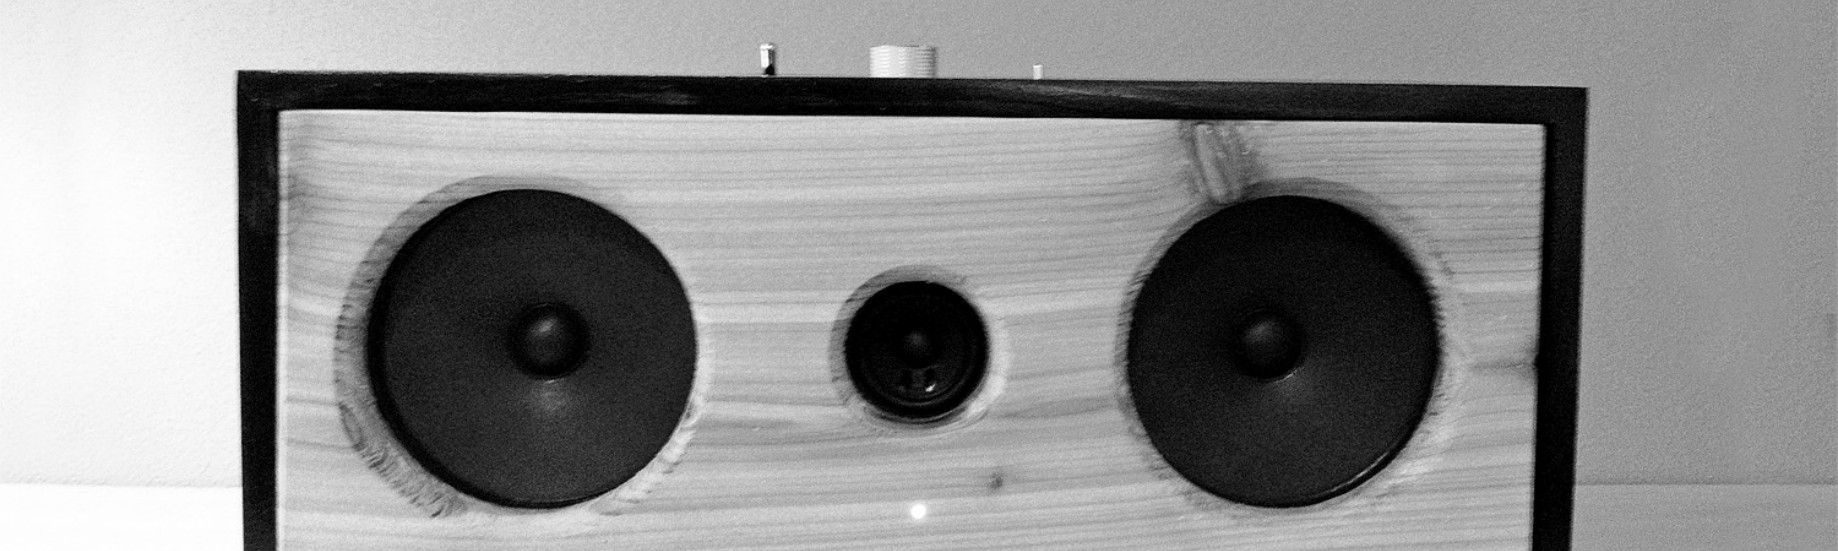 How to build a bluetooth speaker - Kevin Thornbloom - Medium